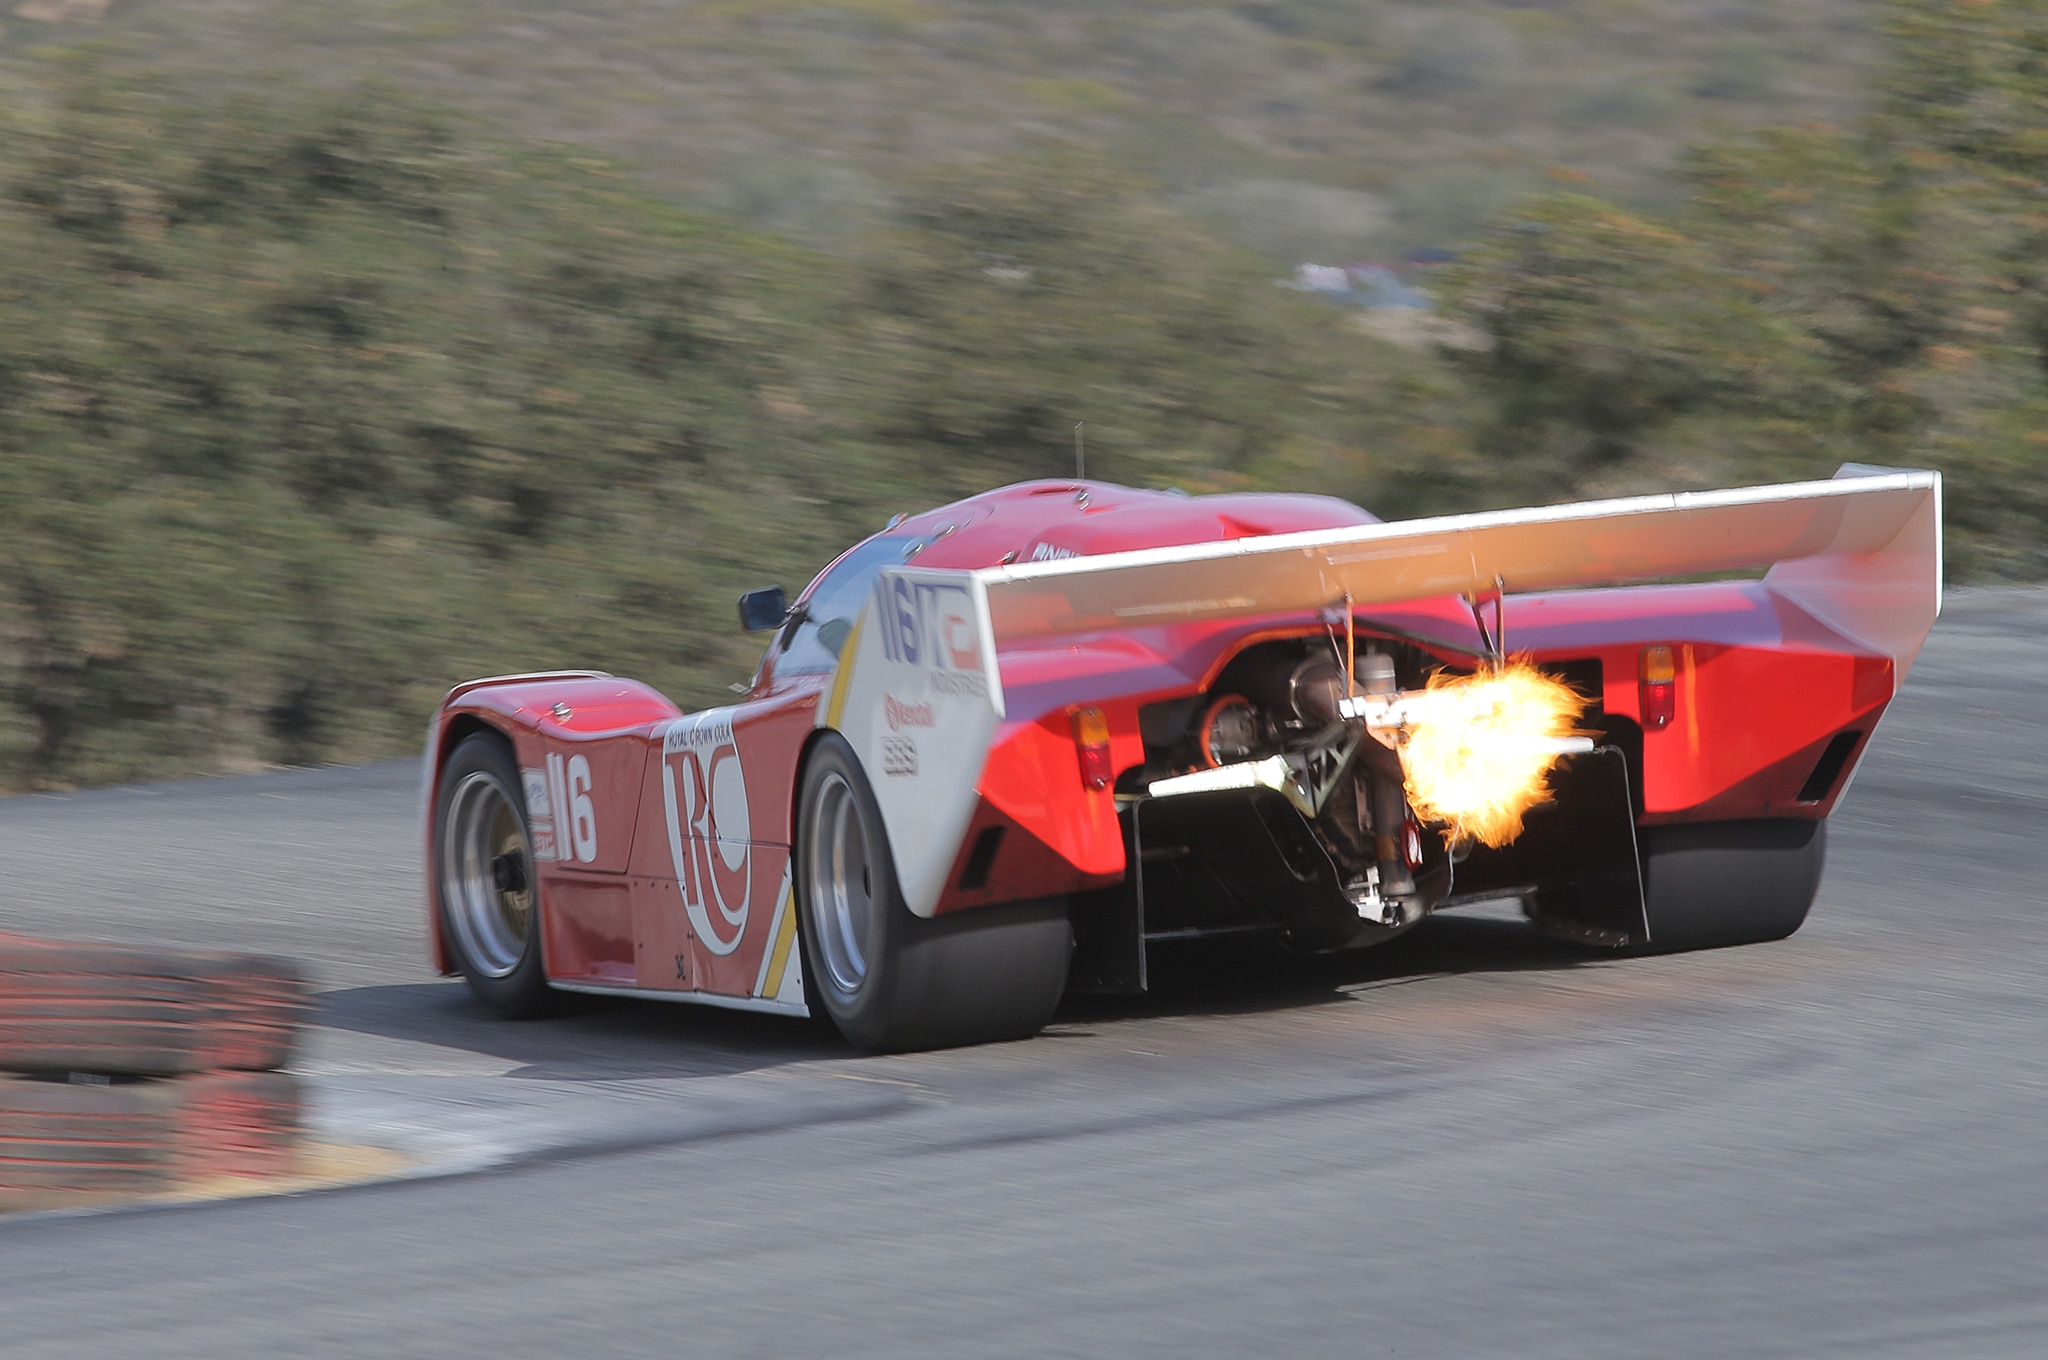 3. A 1986 Porsche 962 spits flame at the top of the Corkscrew.